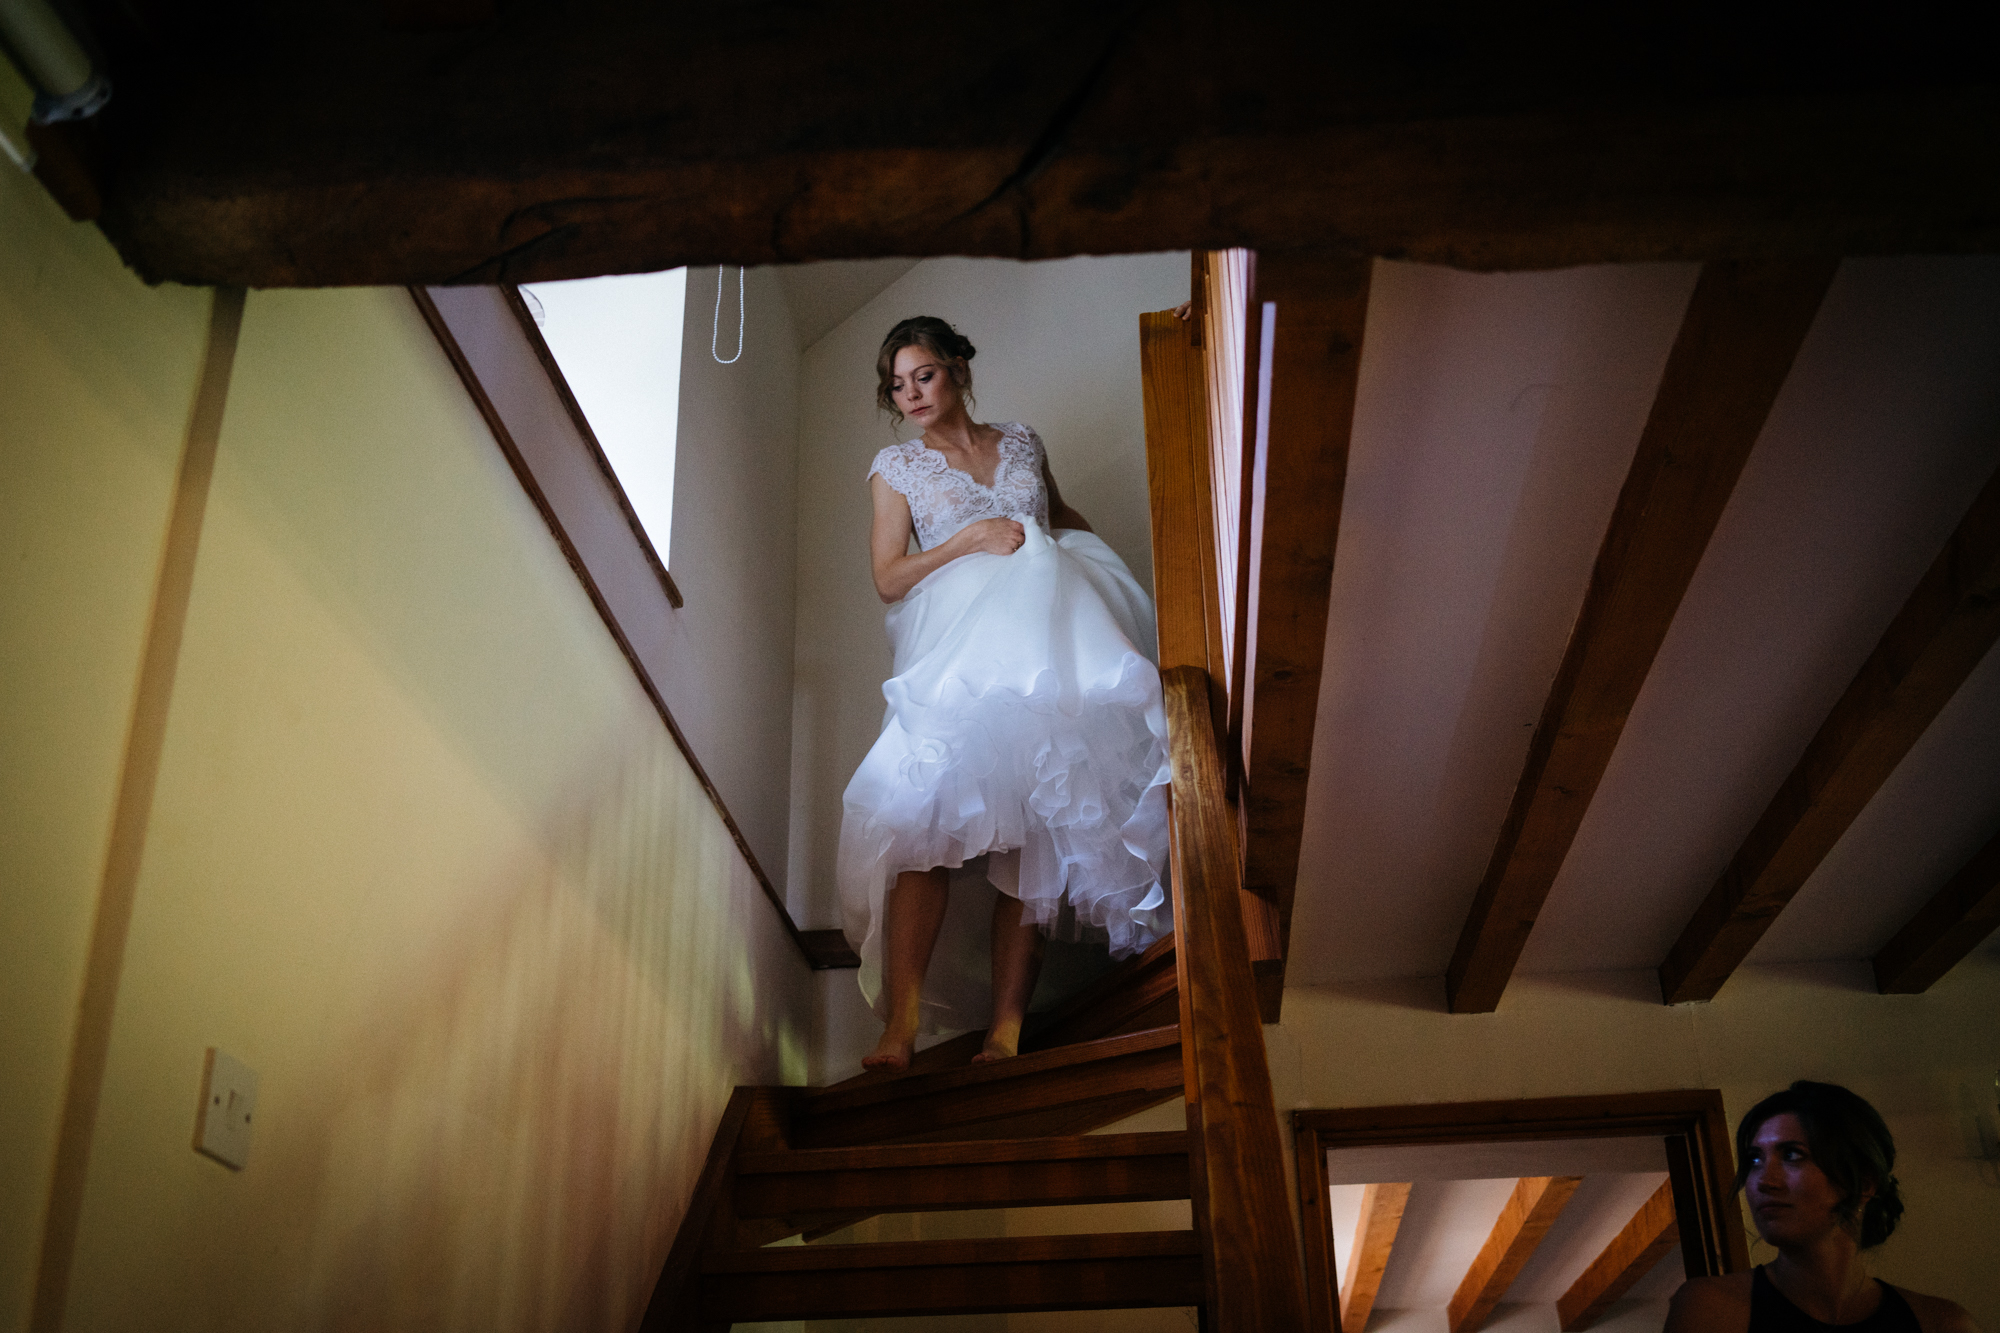 The brides entry